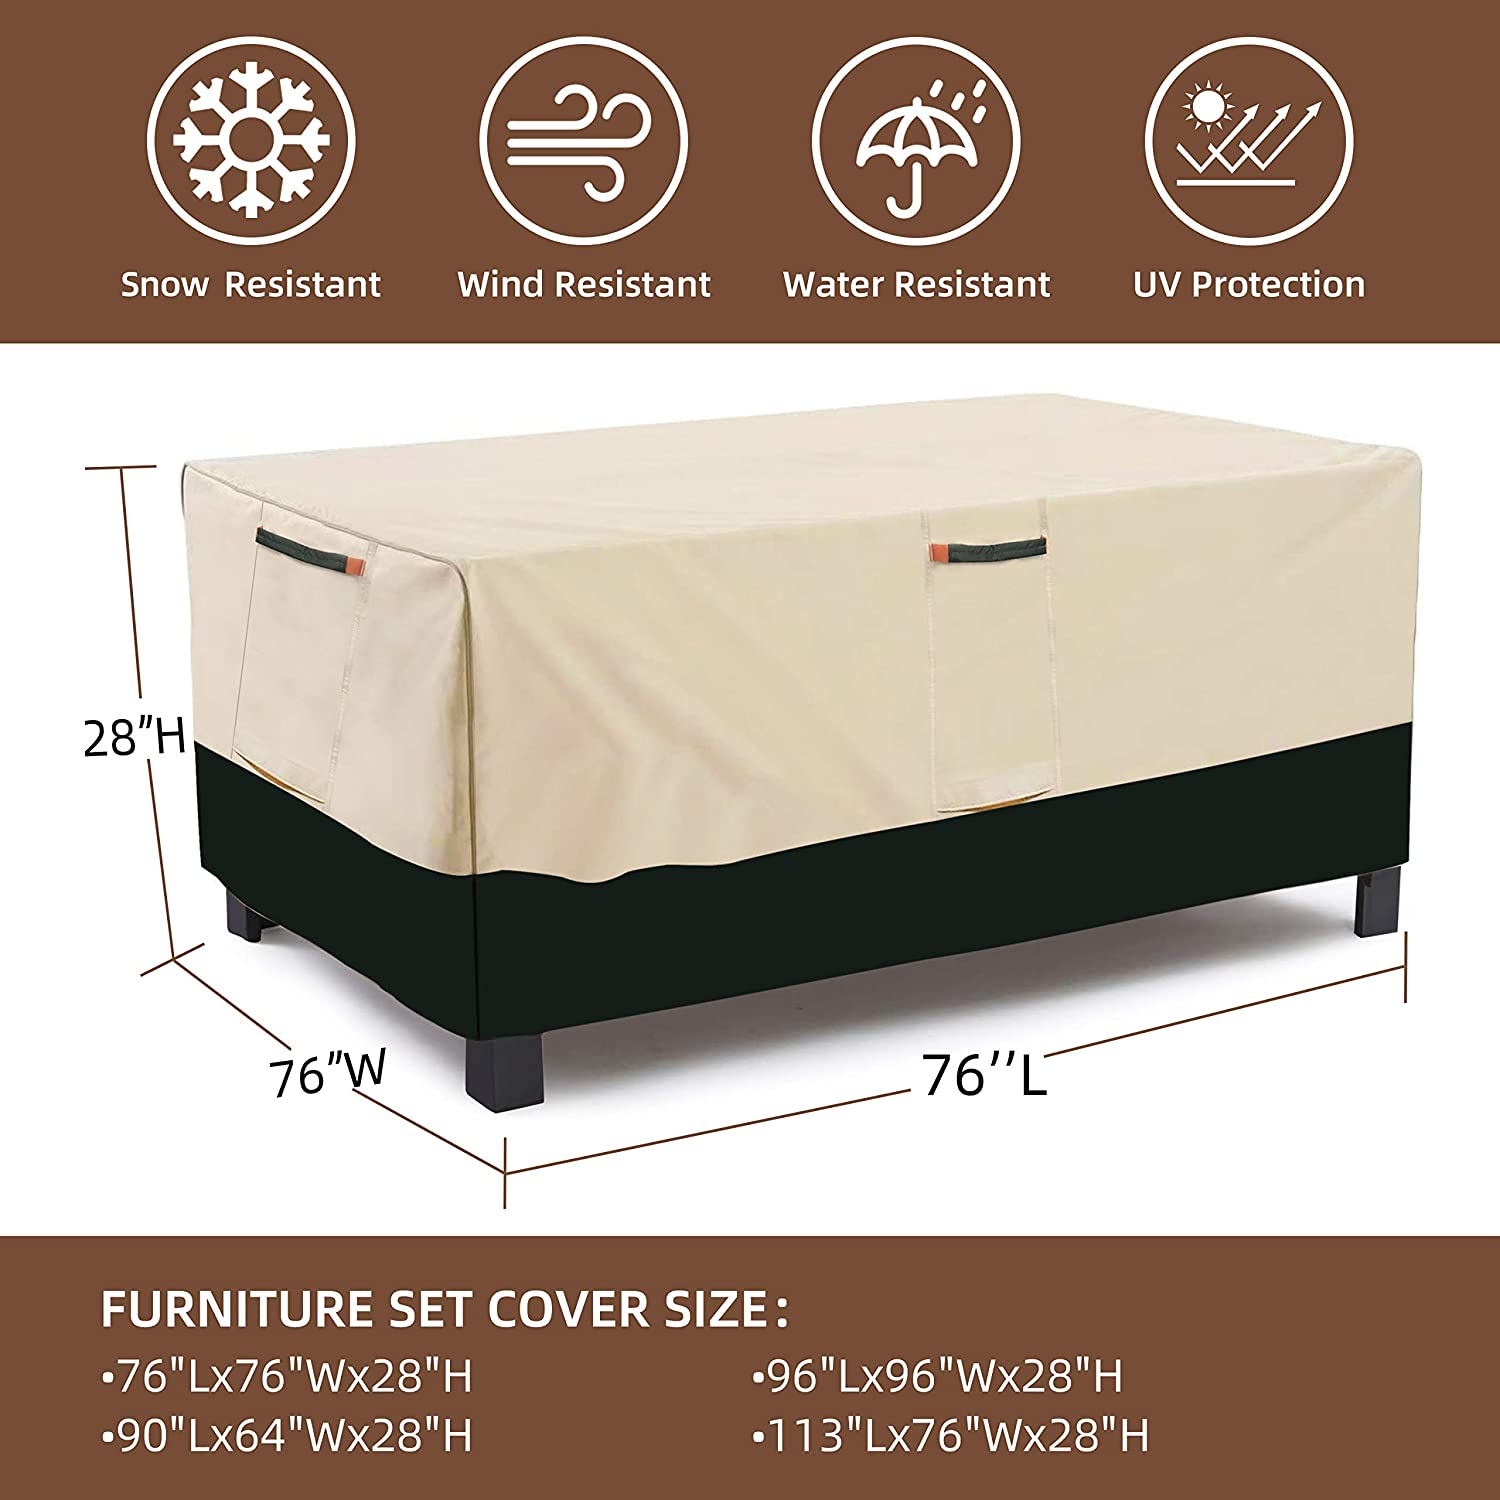 Umbrauto Extra Large Patio Furniture Covers Outdoor Table Cover Rectangle Furniture Set Covers Waterproof Windproof Tear Resistant 76Lx76Wx28H inch